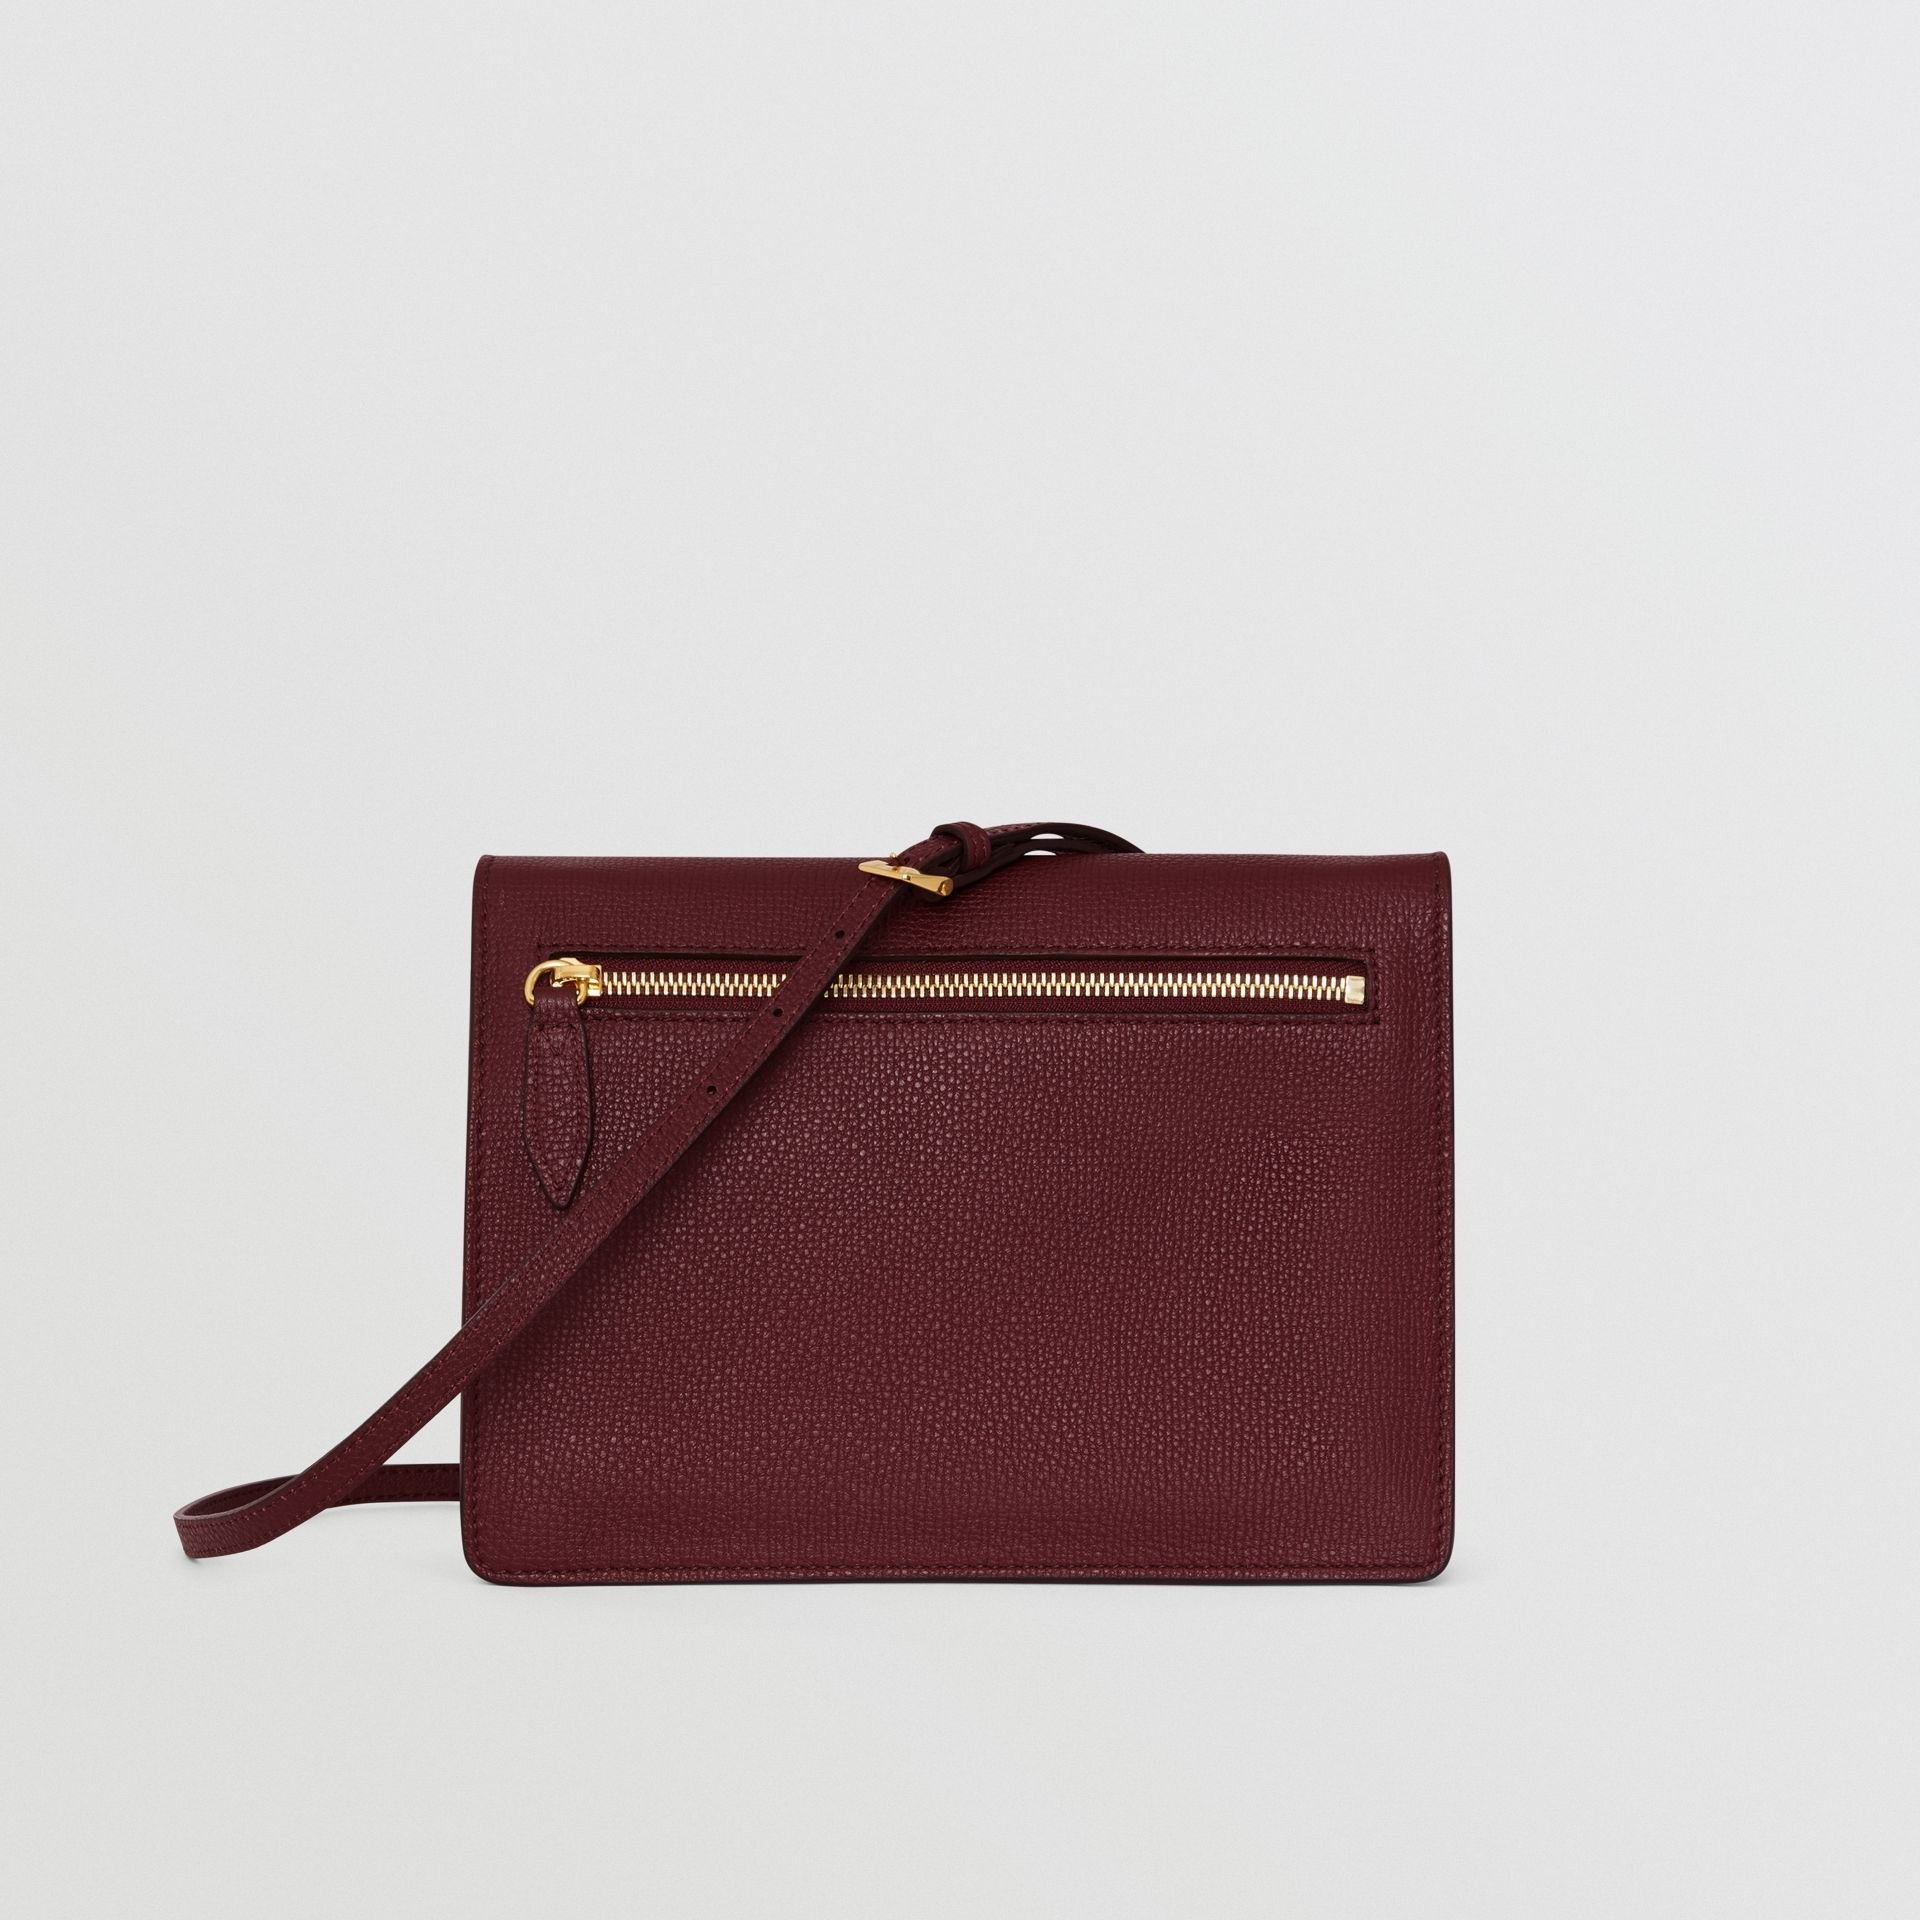 Small Leather Crossbody Bag in Mahogany Red - Women | Burberry United Kingdom - gallery image 7